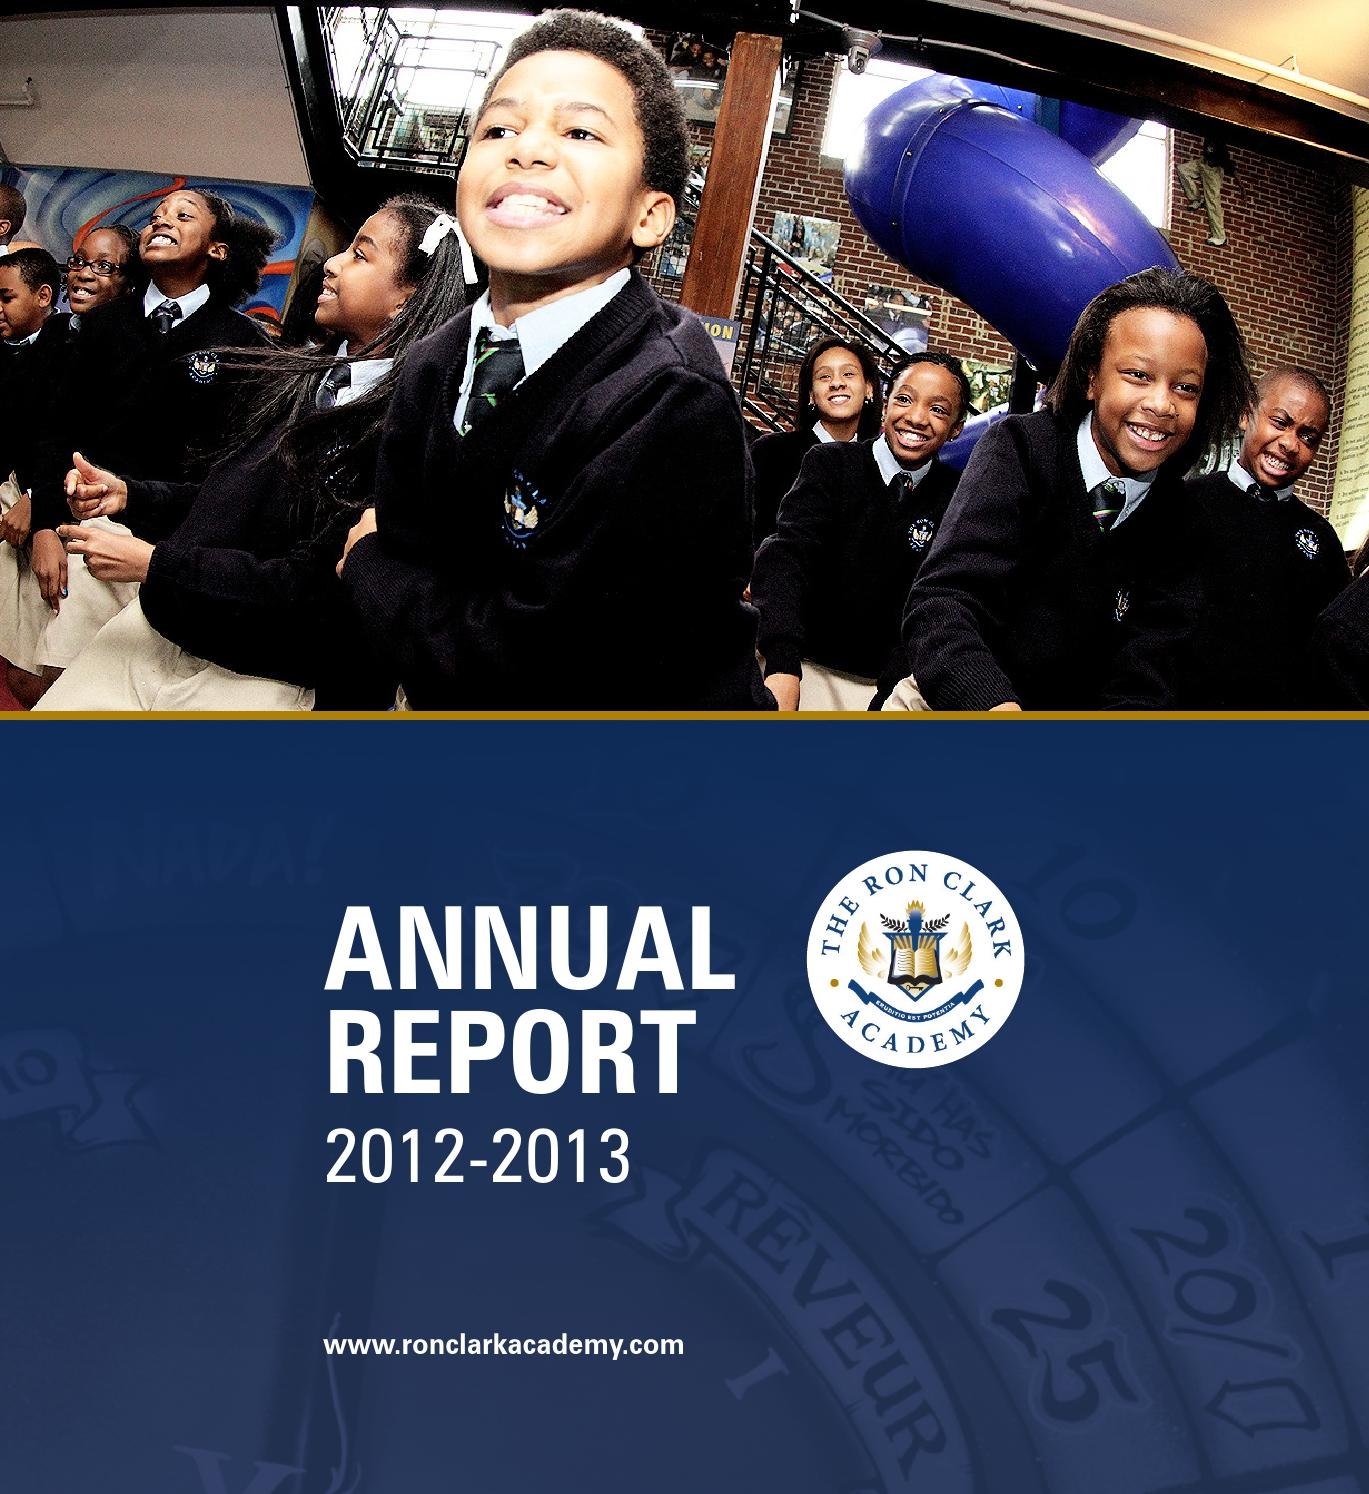 RCA Annual Report 2013 By The Ron Clark Academy